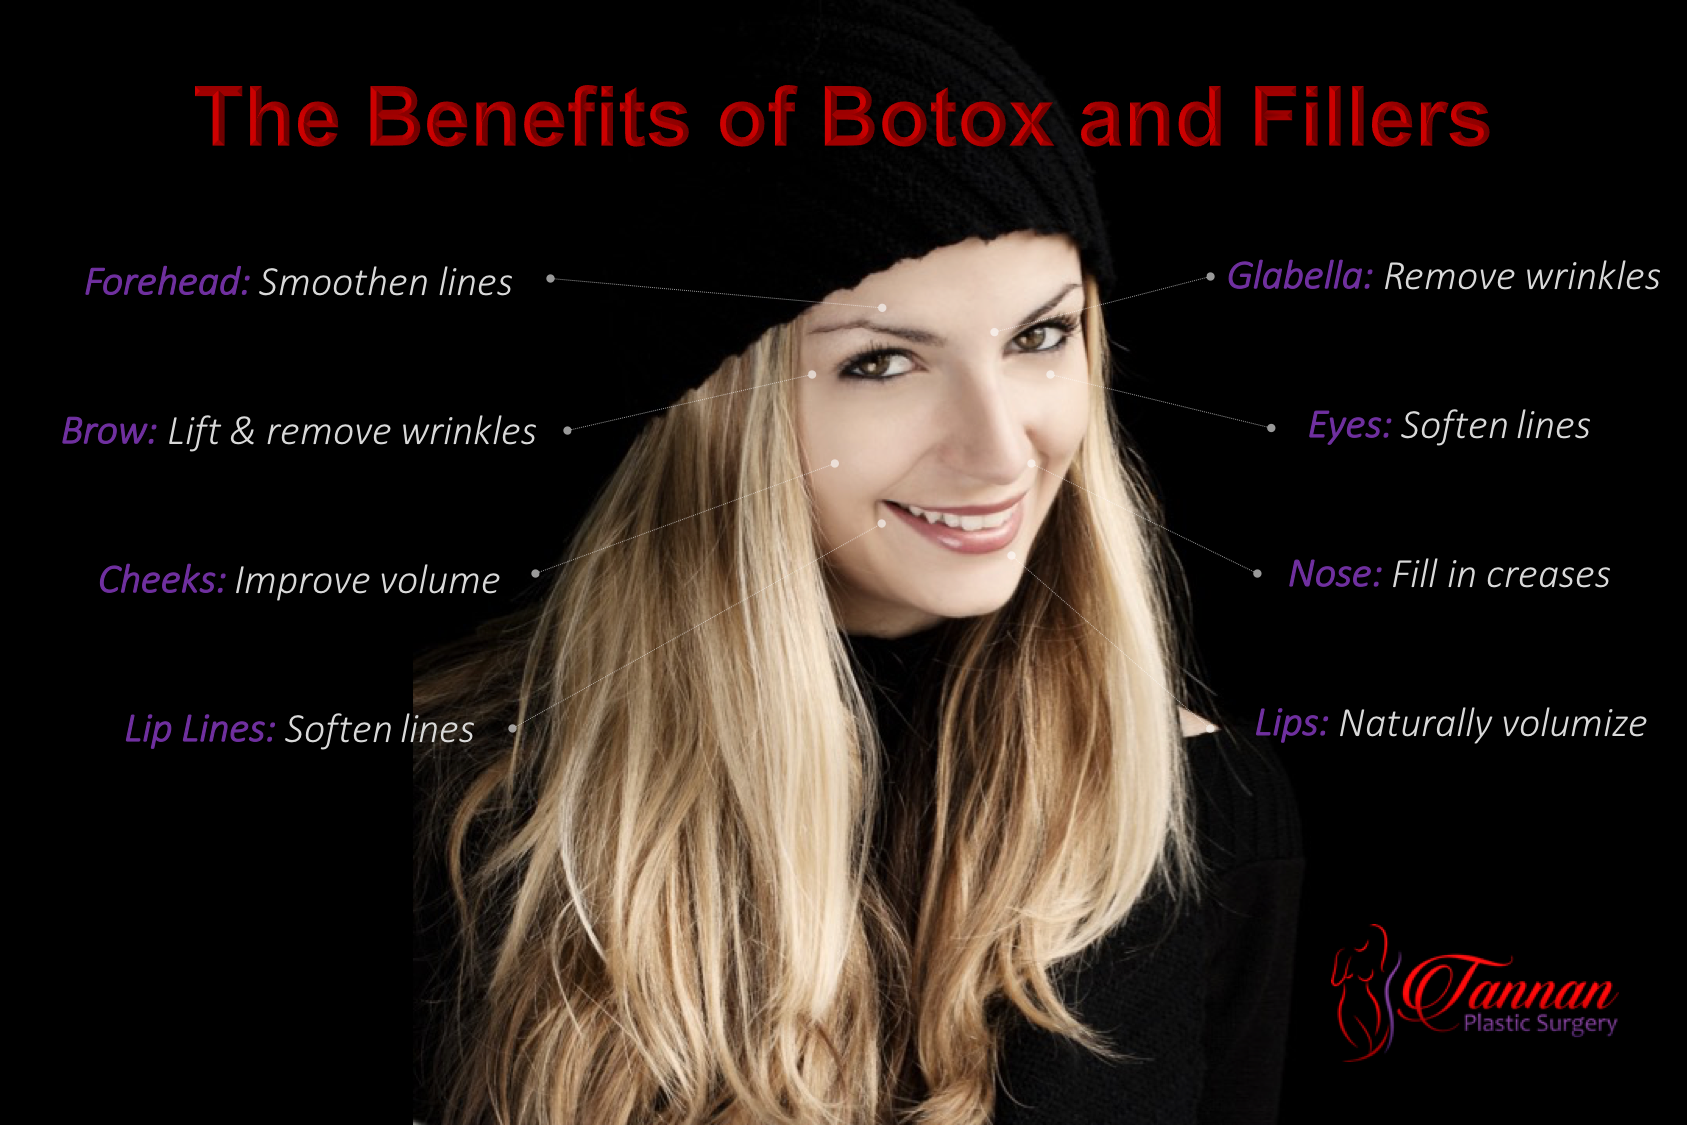 Benefits of Botox and Fillers Infographic - Tannan Plastic Surgery